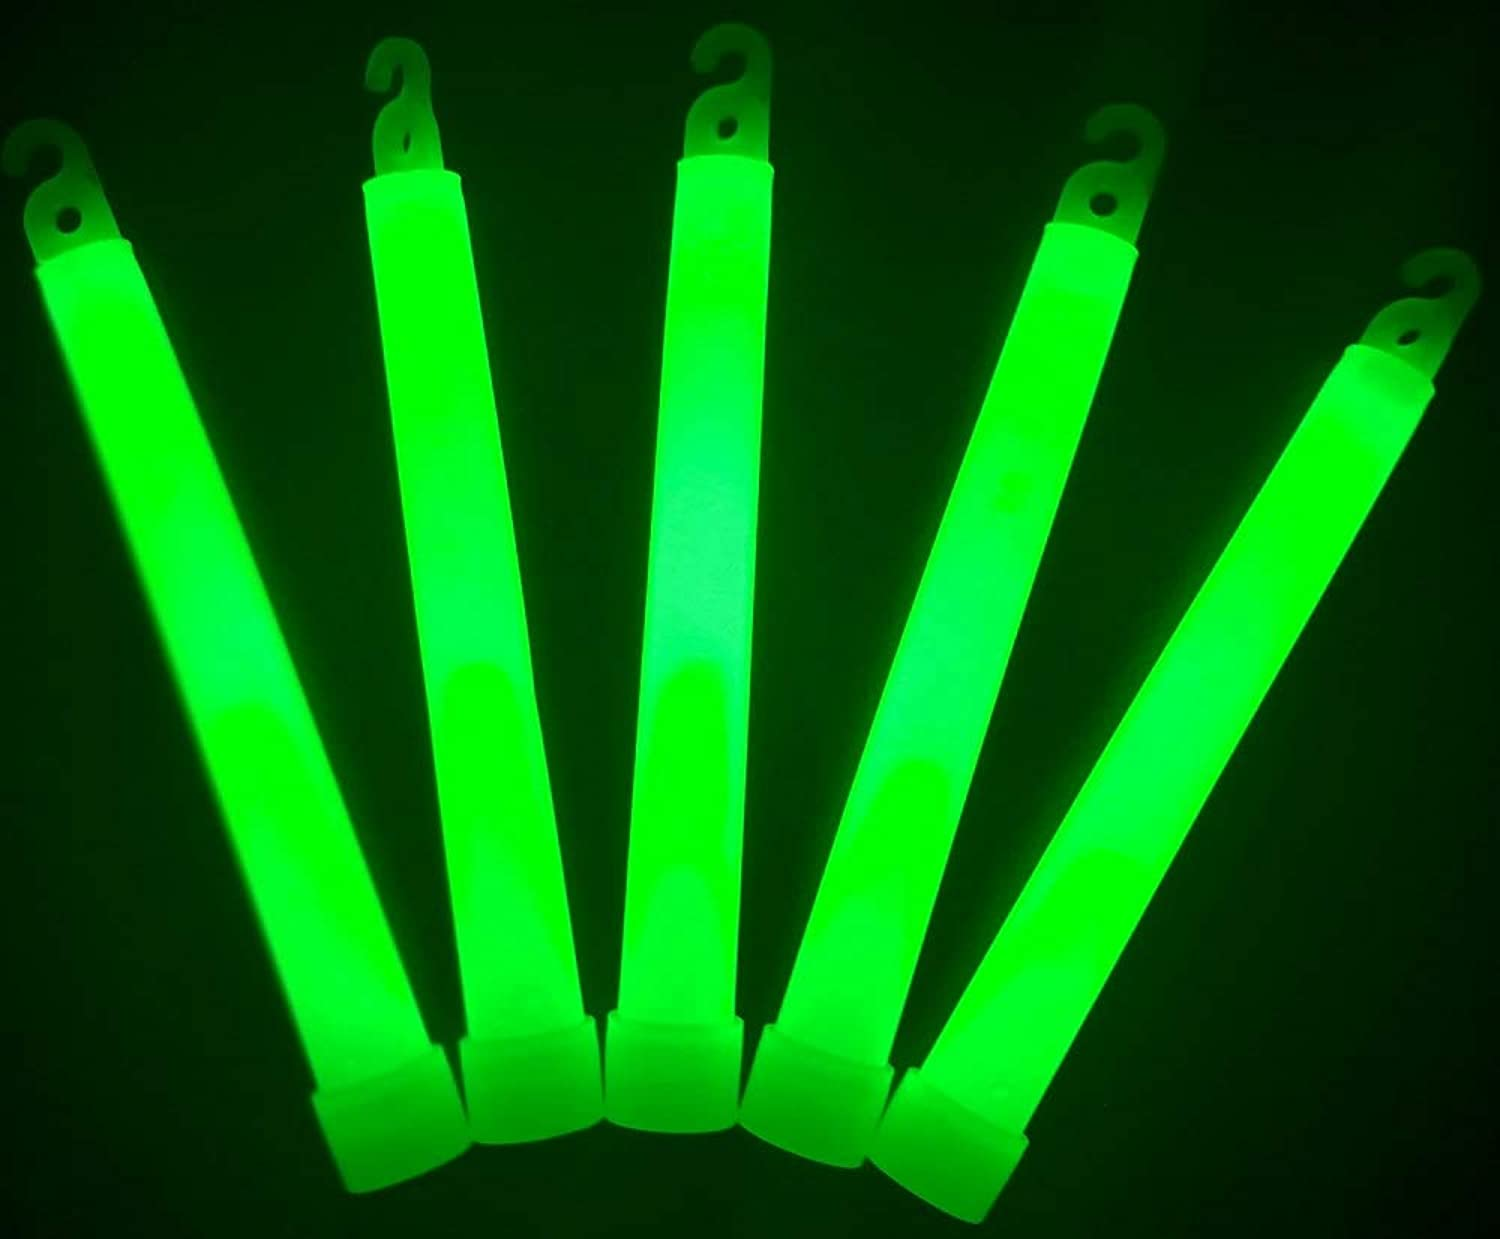 "Glow Sticks Bulk Wholesale, 25 6"" Industrial Grade Green Light Sticks. Bright color, Glow 12-14 Hrs, Safety Glow Stick with 3-year Shelf Life, Glow With Us Brand"